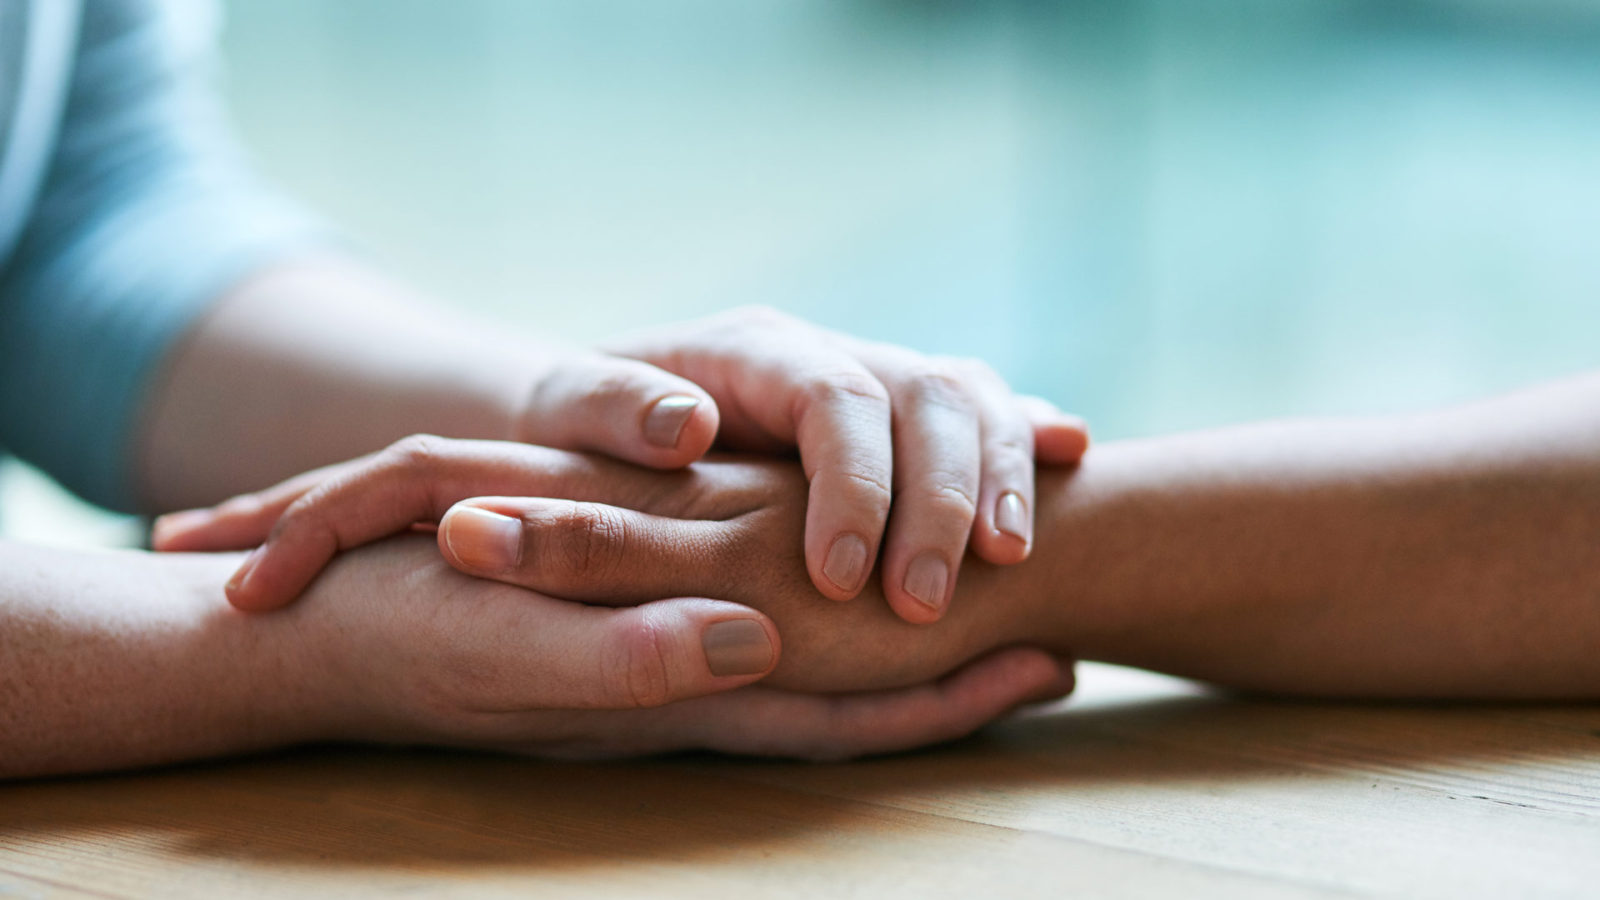 Life-Ministries-Hands